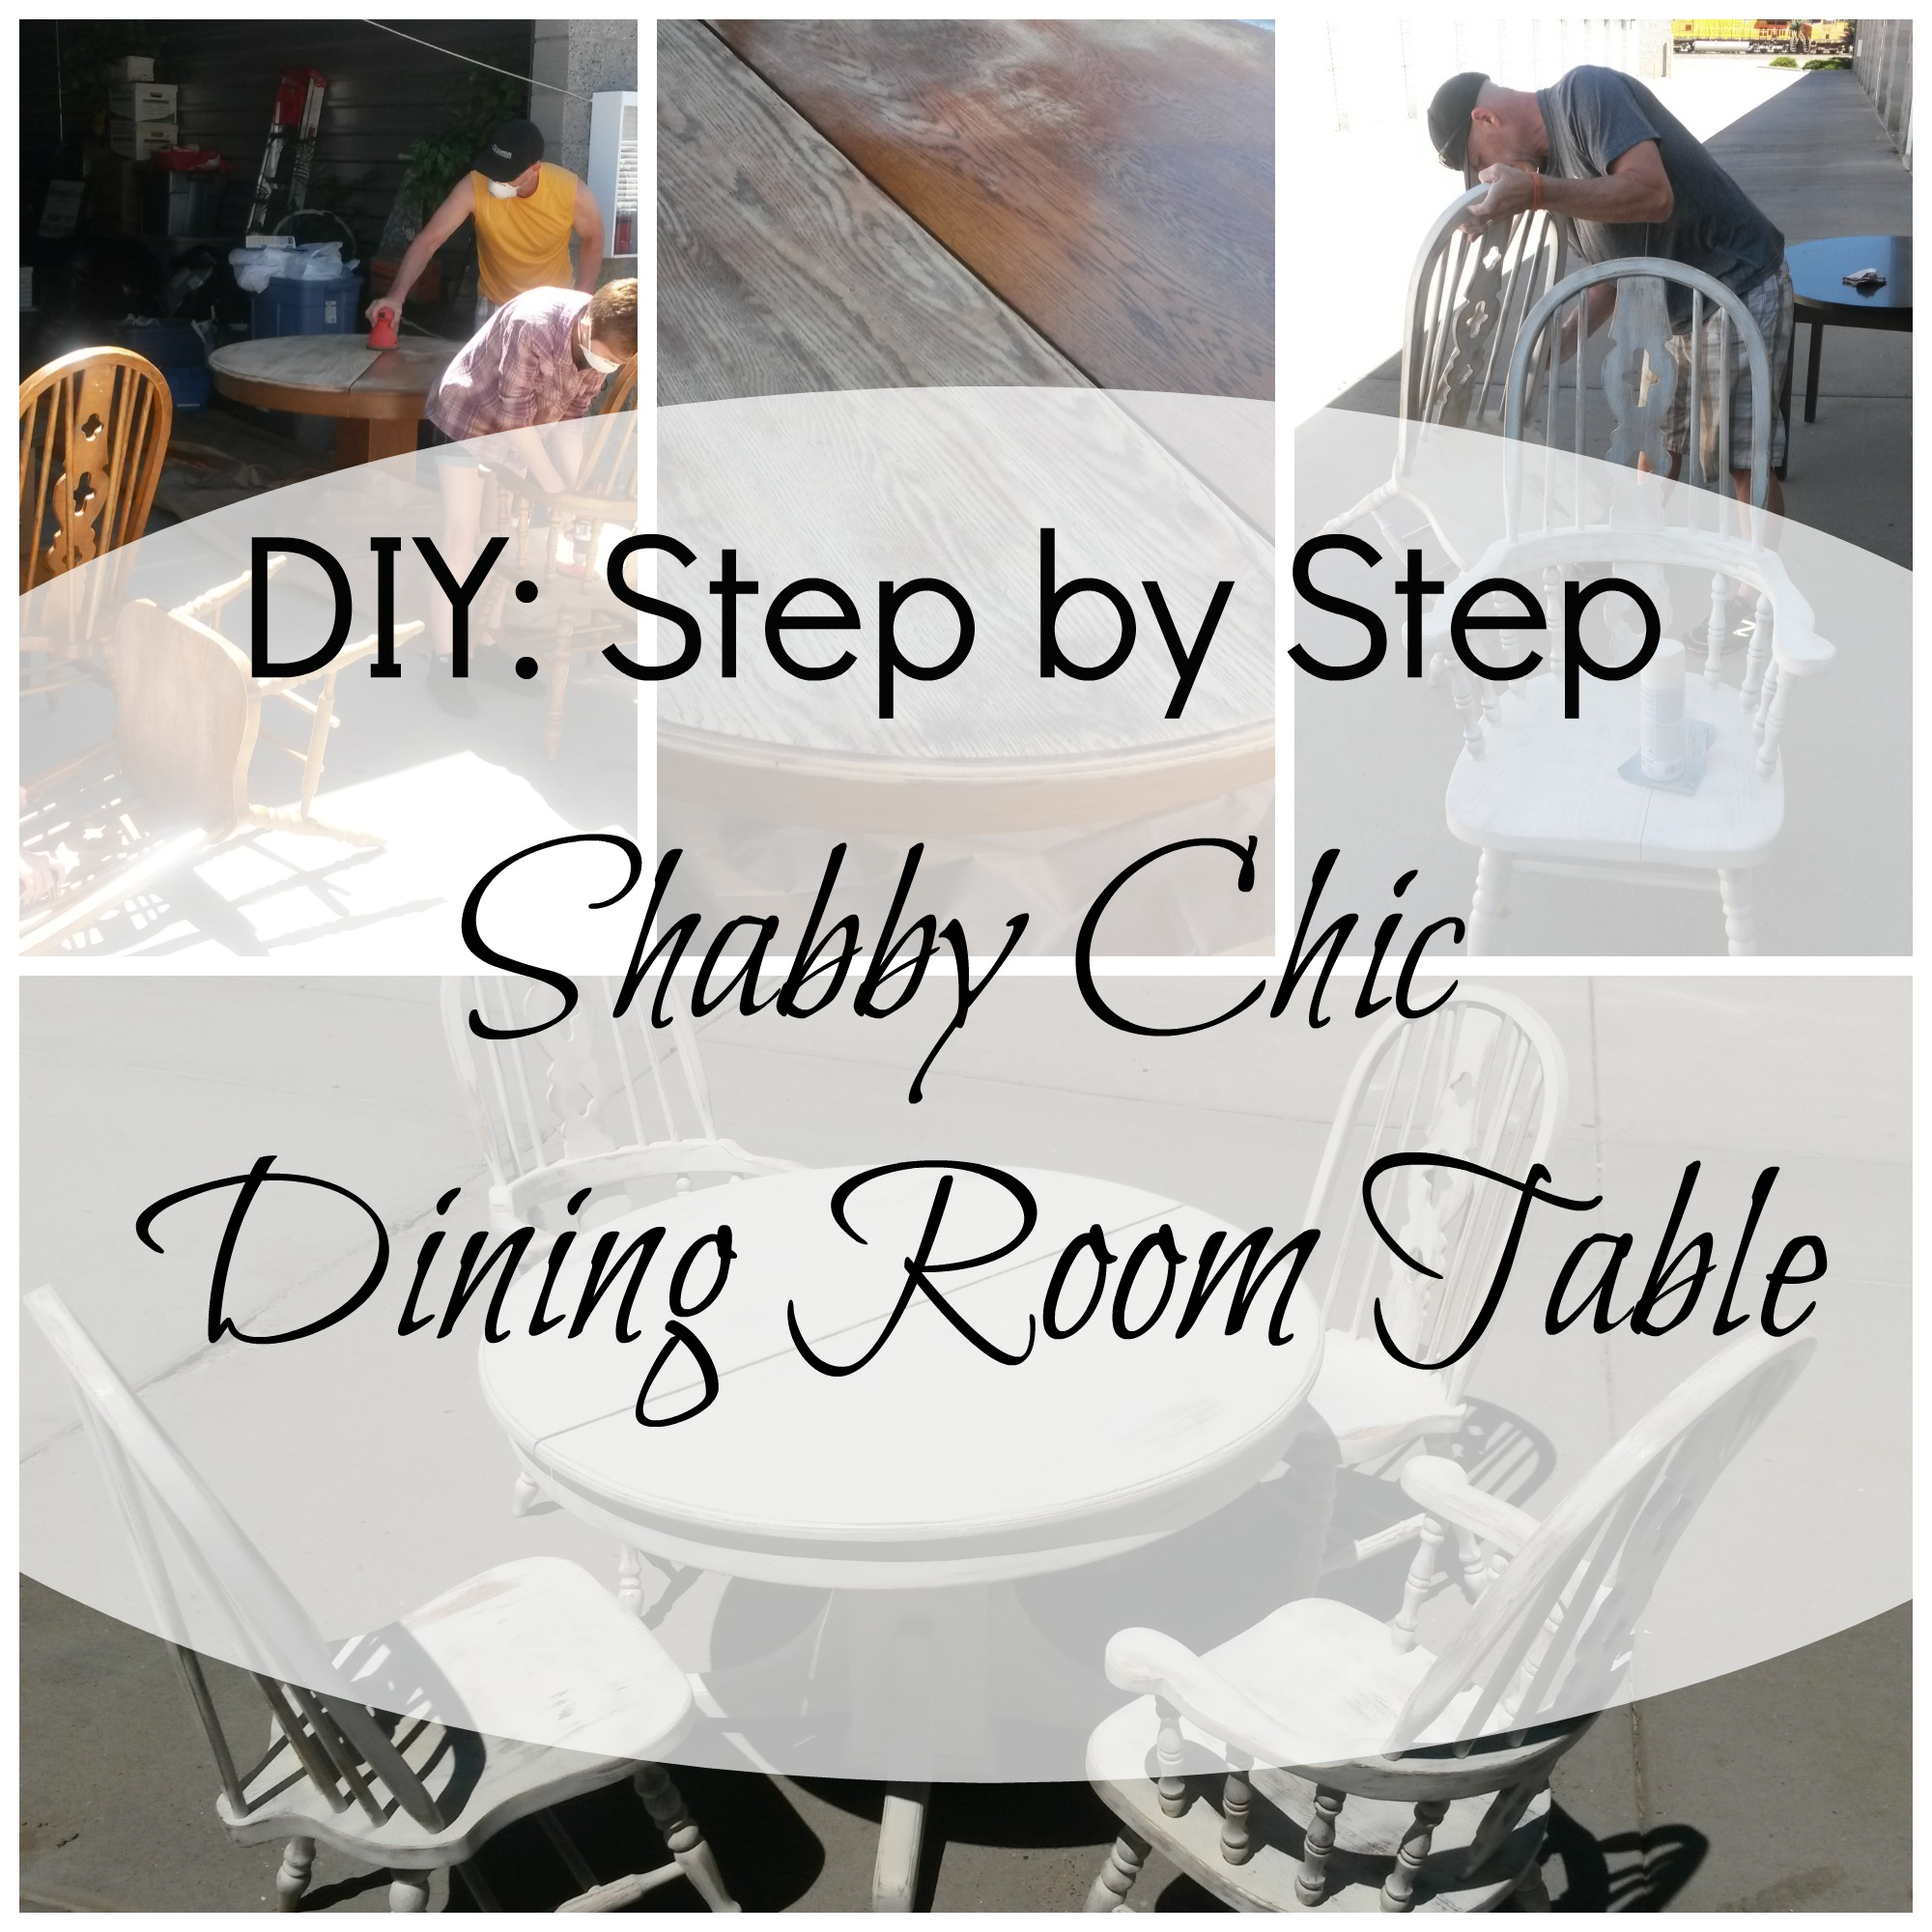 diy shabby chic dining table and chairs. diy - shabby chic dining room table diy and chairs a